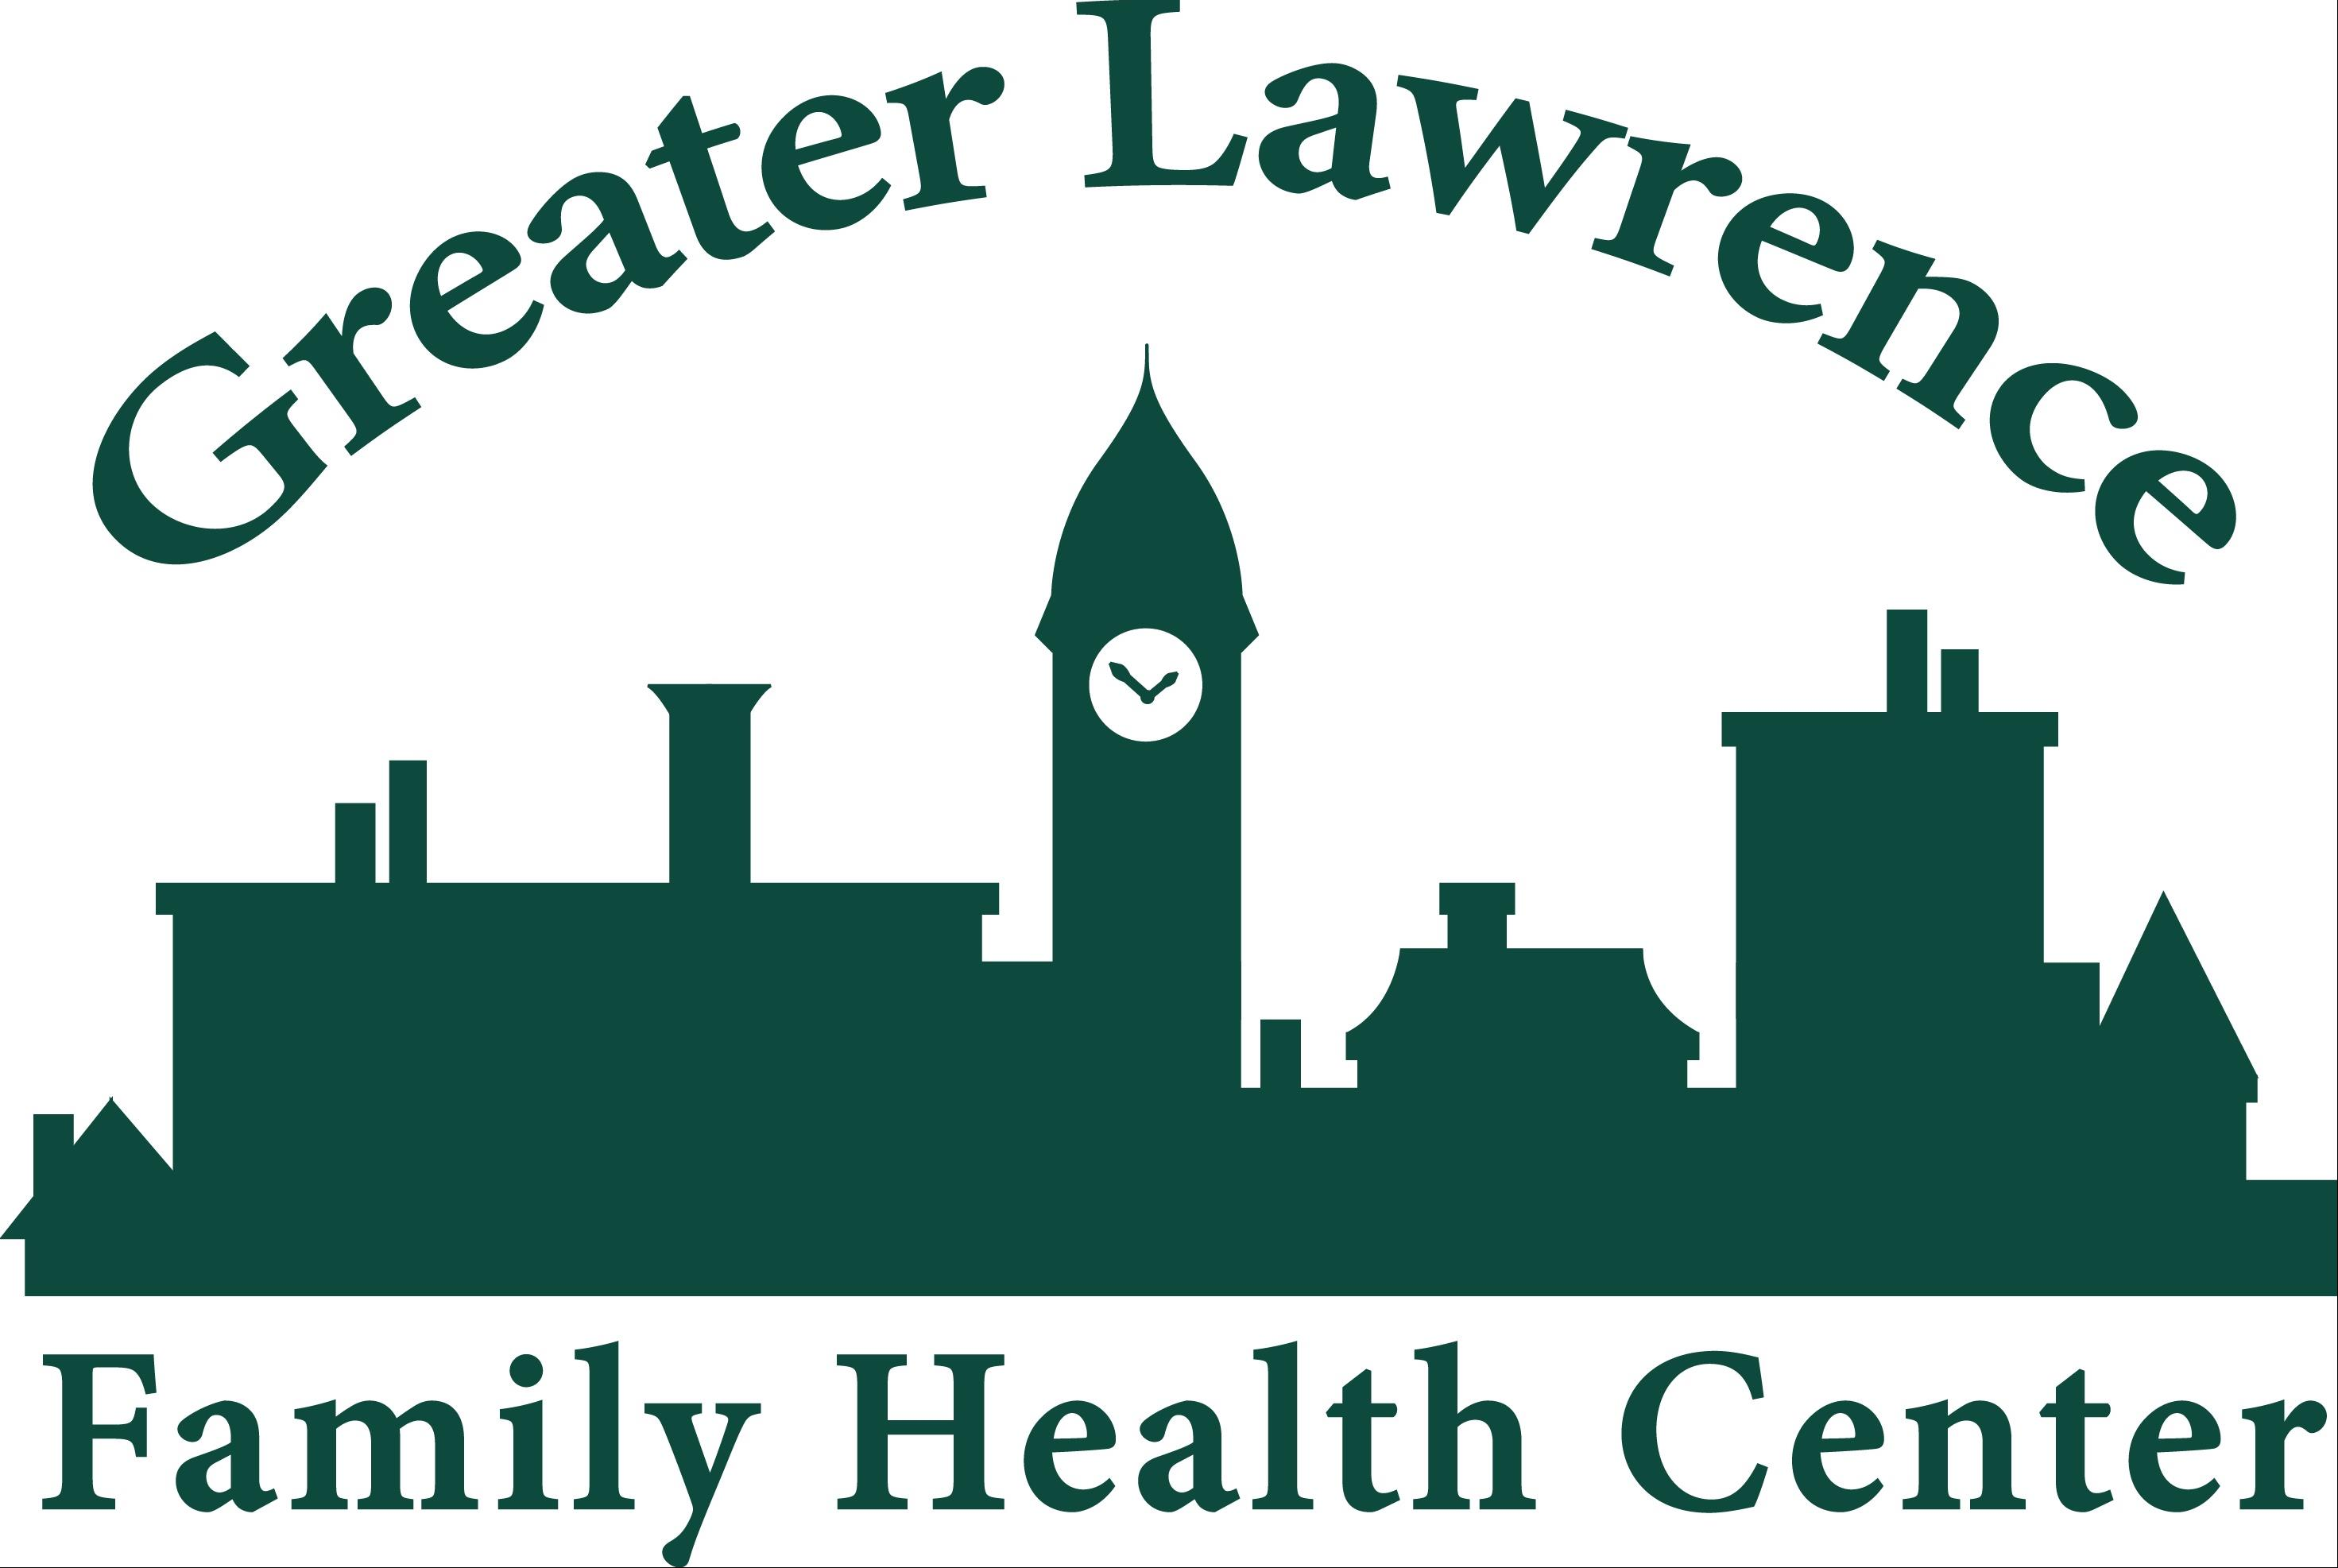 Company Logo Greater Lawrence Family Health Center